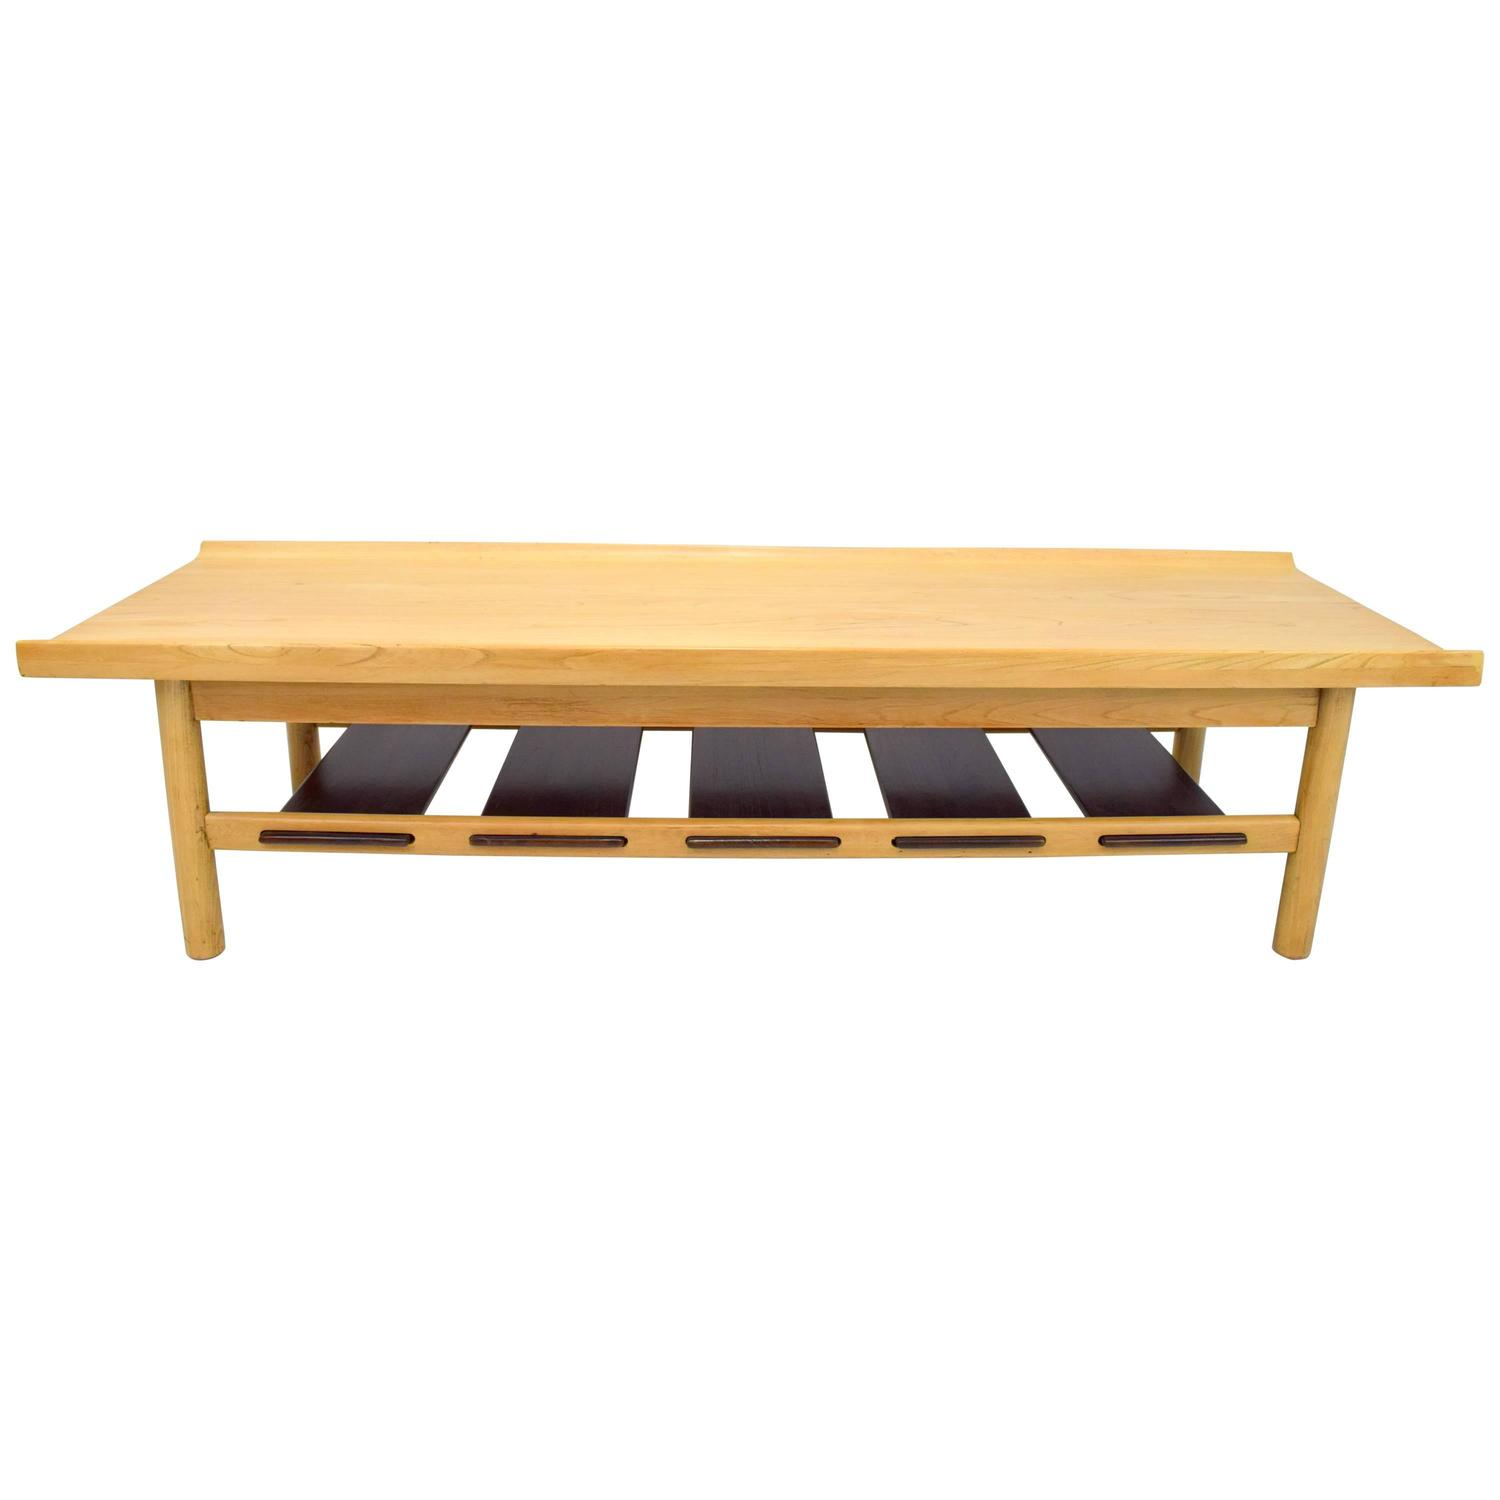 lawrence peabody bleached walnut coffee table bench for richardson lawrence peabody bleached walnut coffee table bench for richardson nemschoff for sale at 1stdibs